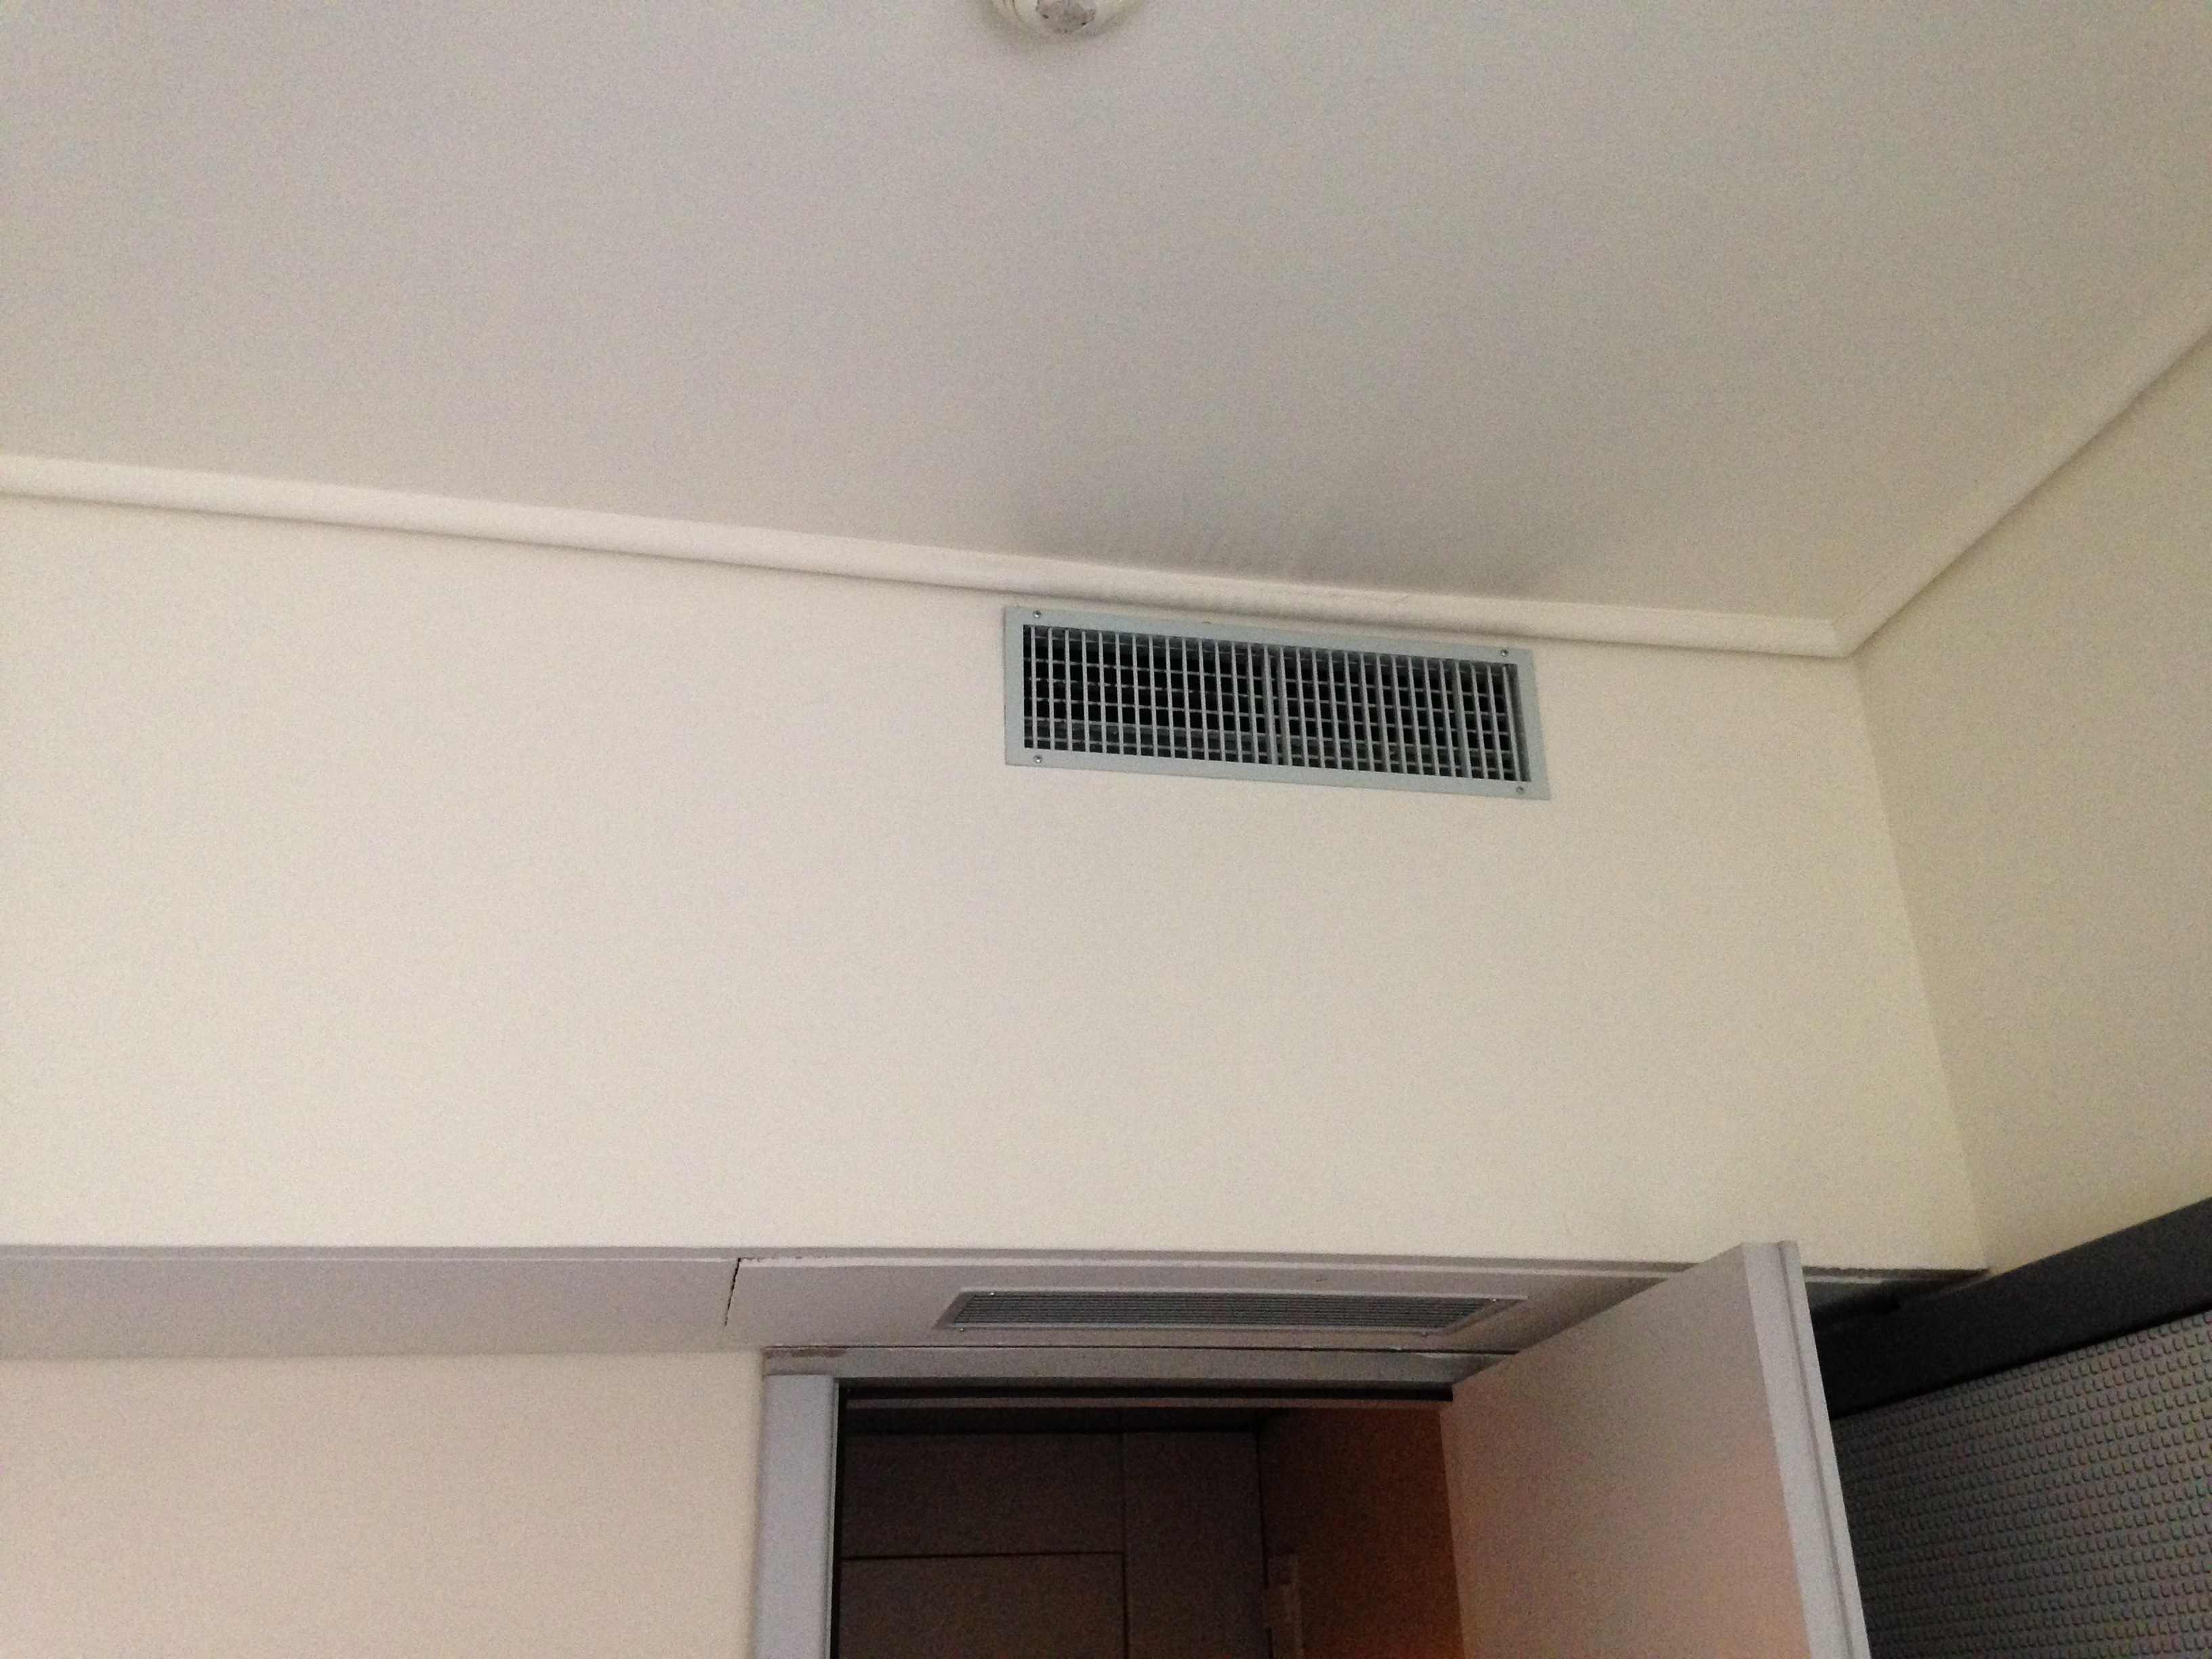 File:Air conditioner at the hotel bedroom.jpg - Wikimedia Commons